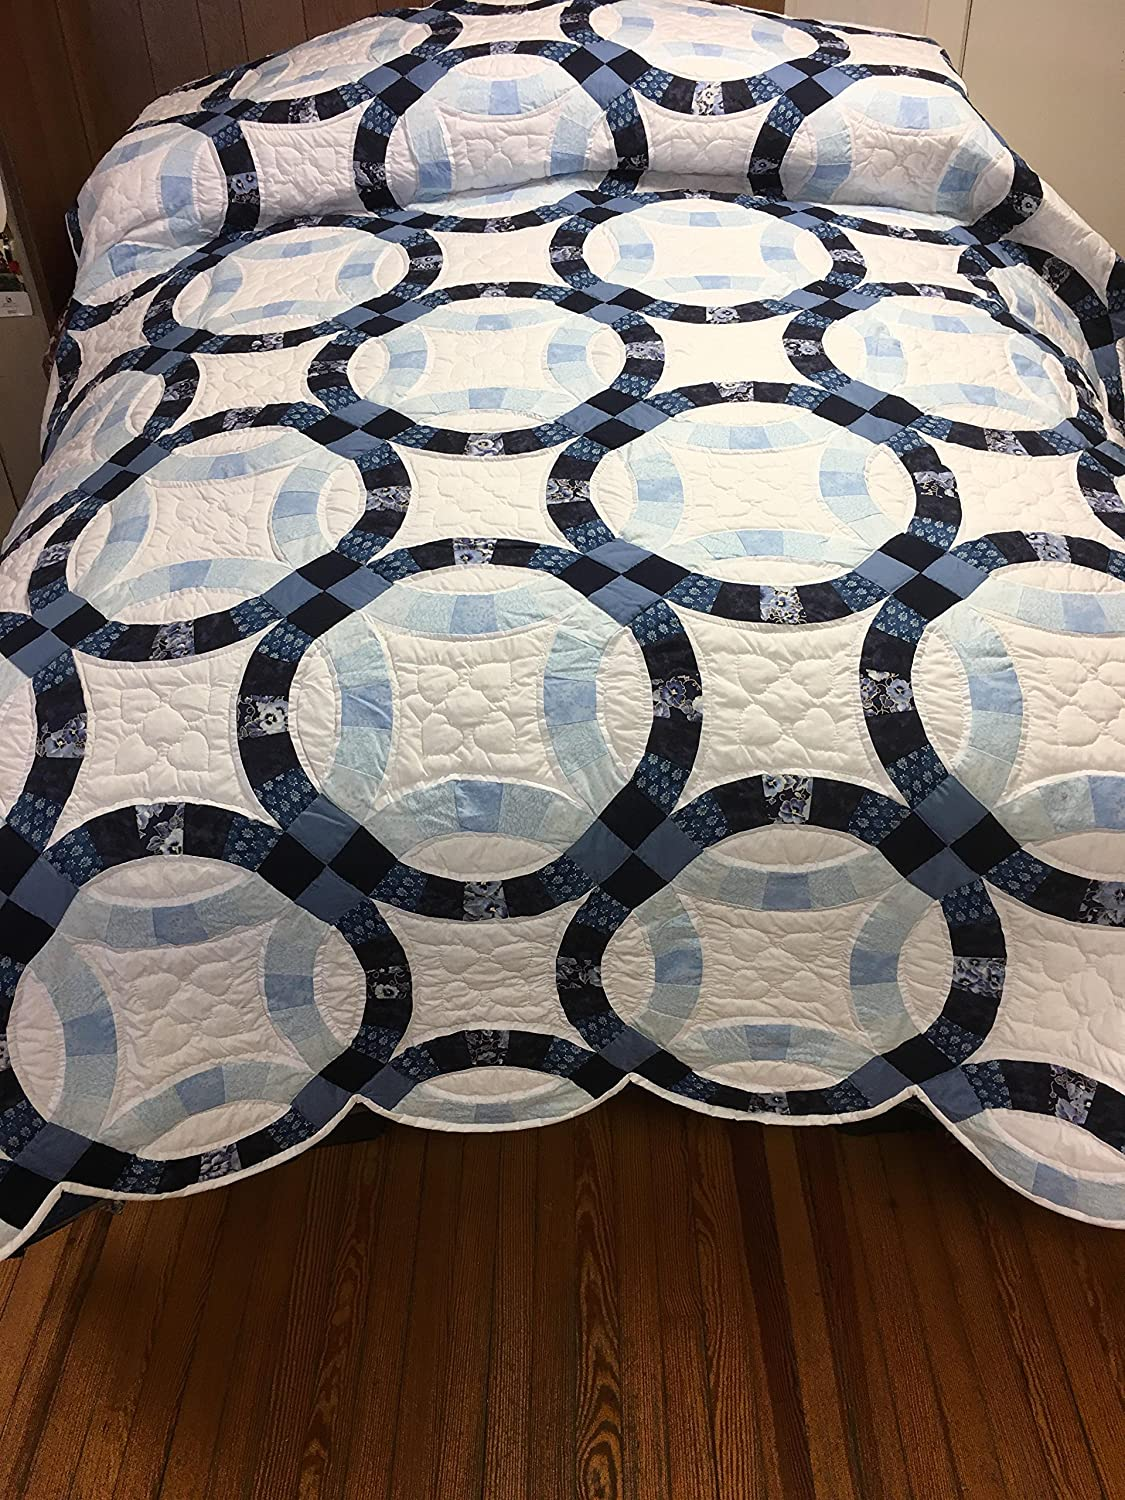 Handmade Hand-quilted Amish Quilt King/Queen - Double Wedding Ring (White-Dark Blue, Queen)